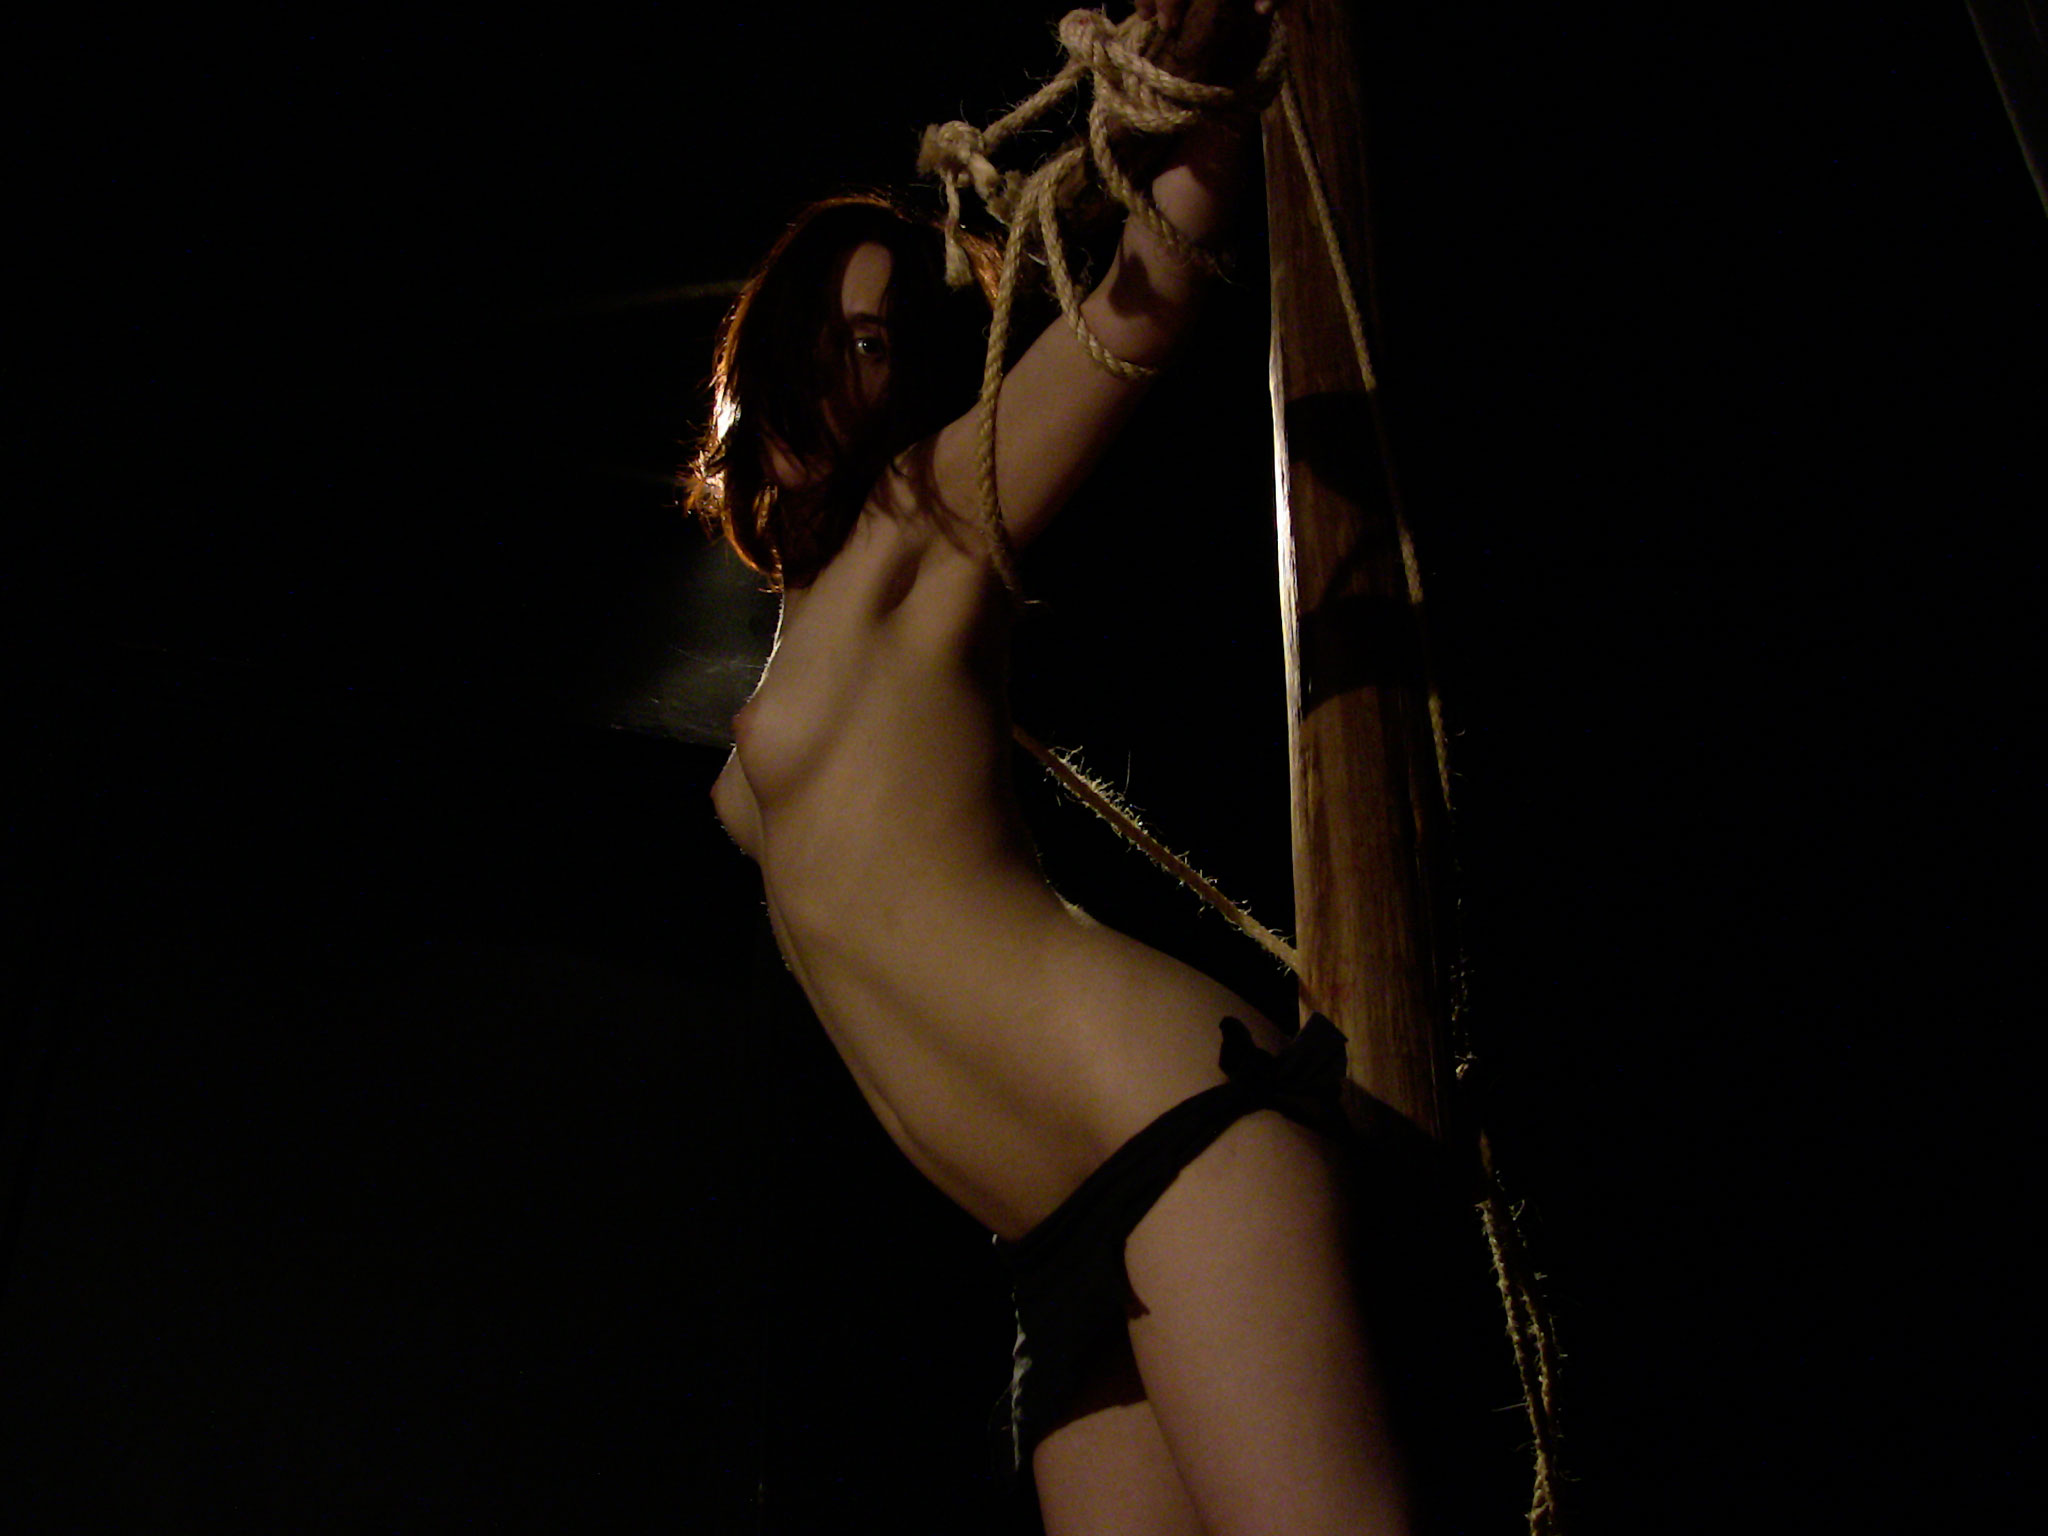 Nude on torture rack hentia scene